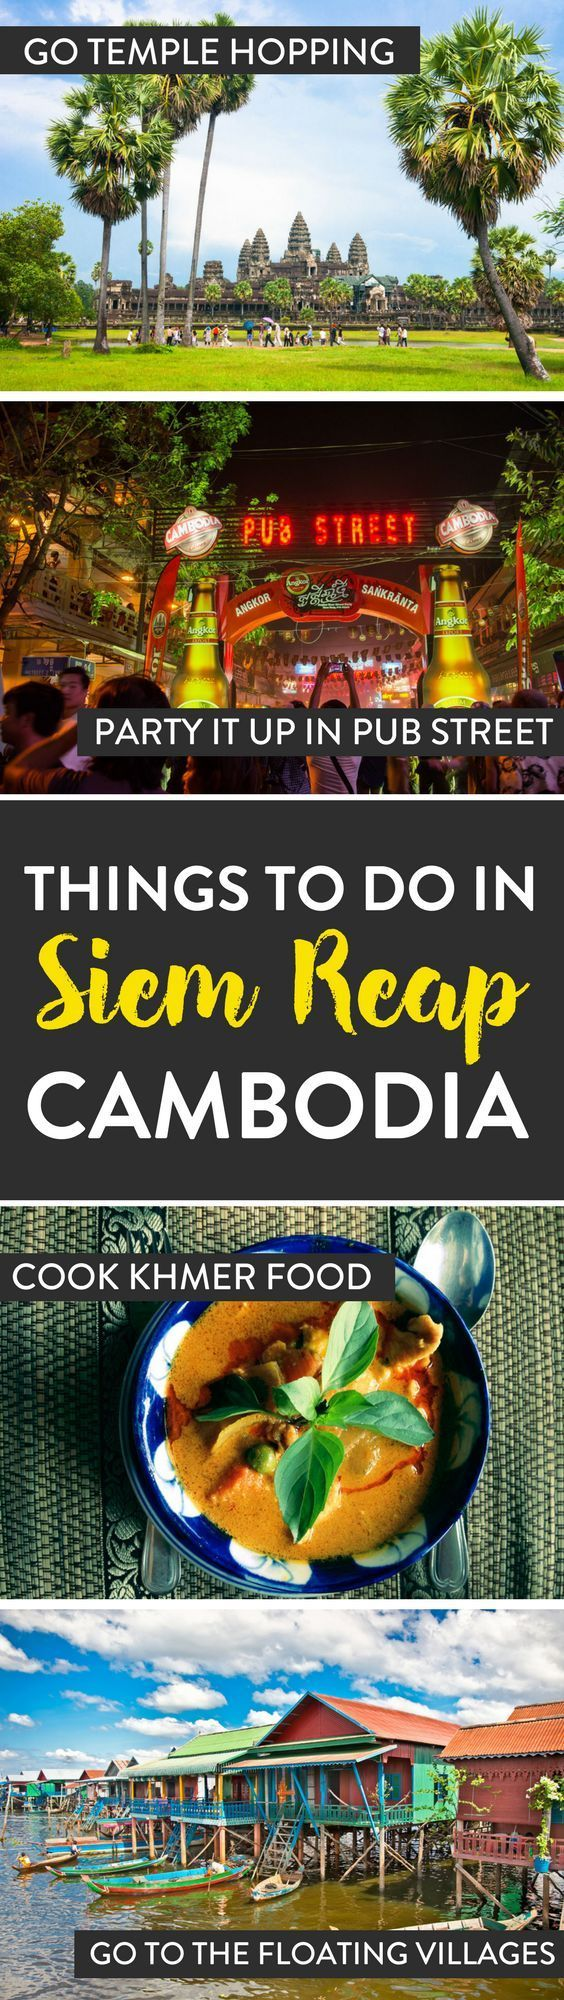 Cambodia Travel | Planning a trip to Siem Reap, Cambodia? Here's our list which has a few of the best things to see and do while in Cambodia.